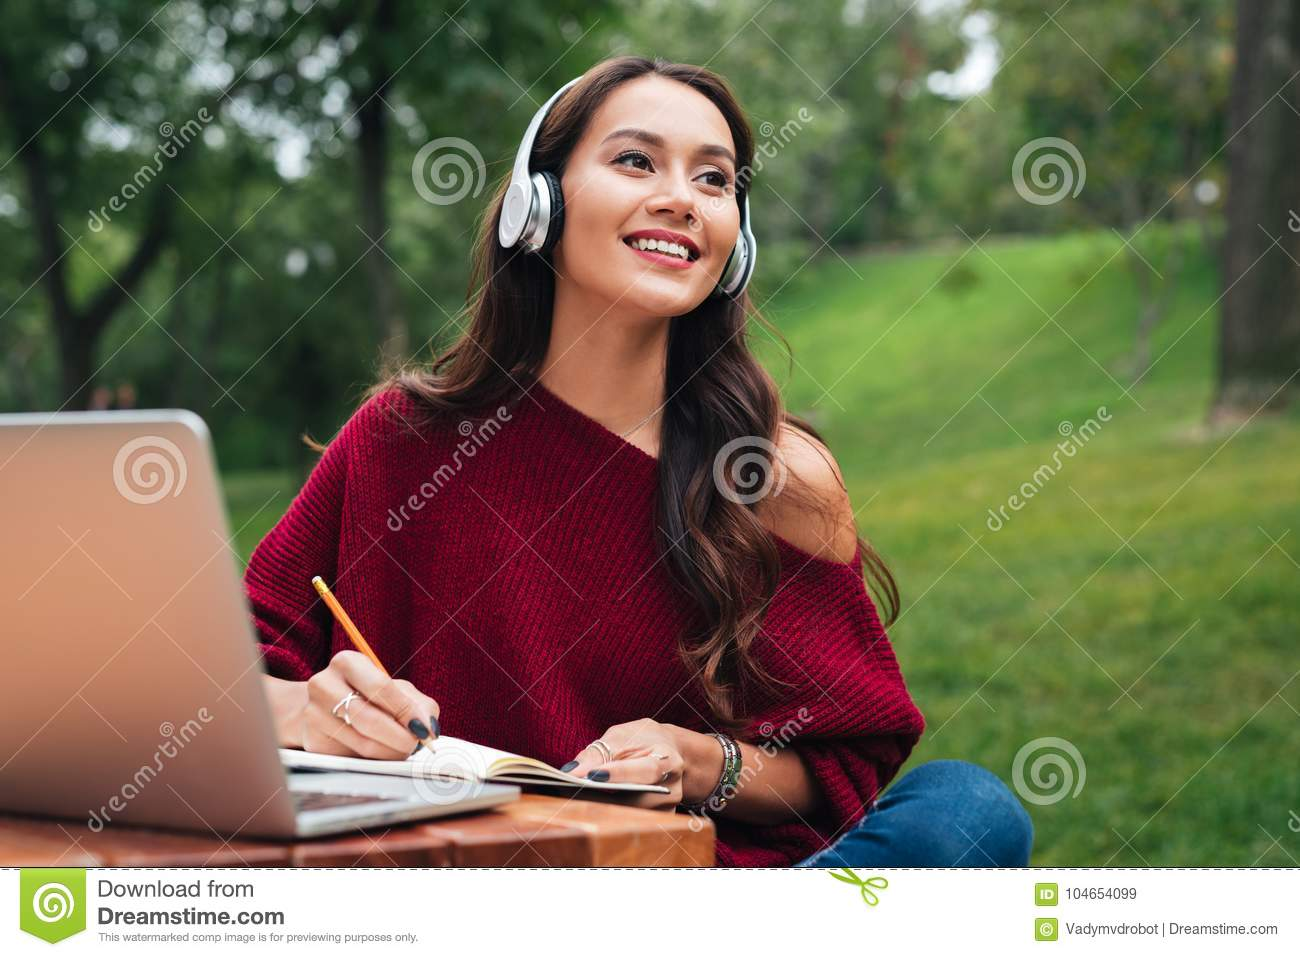 Portrait of a smiling young asian girl in headphones